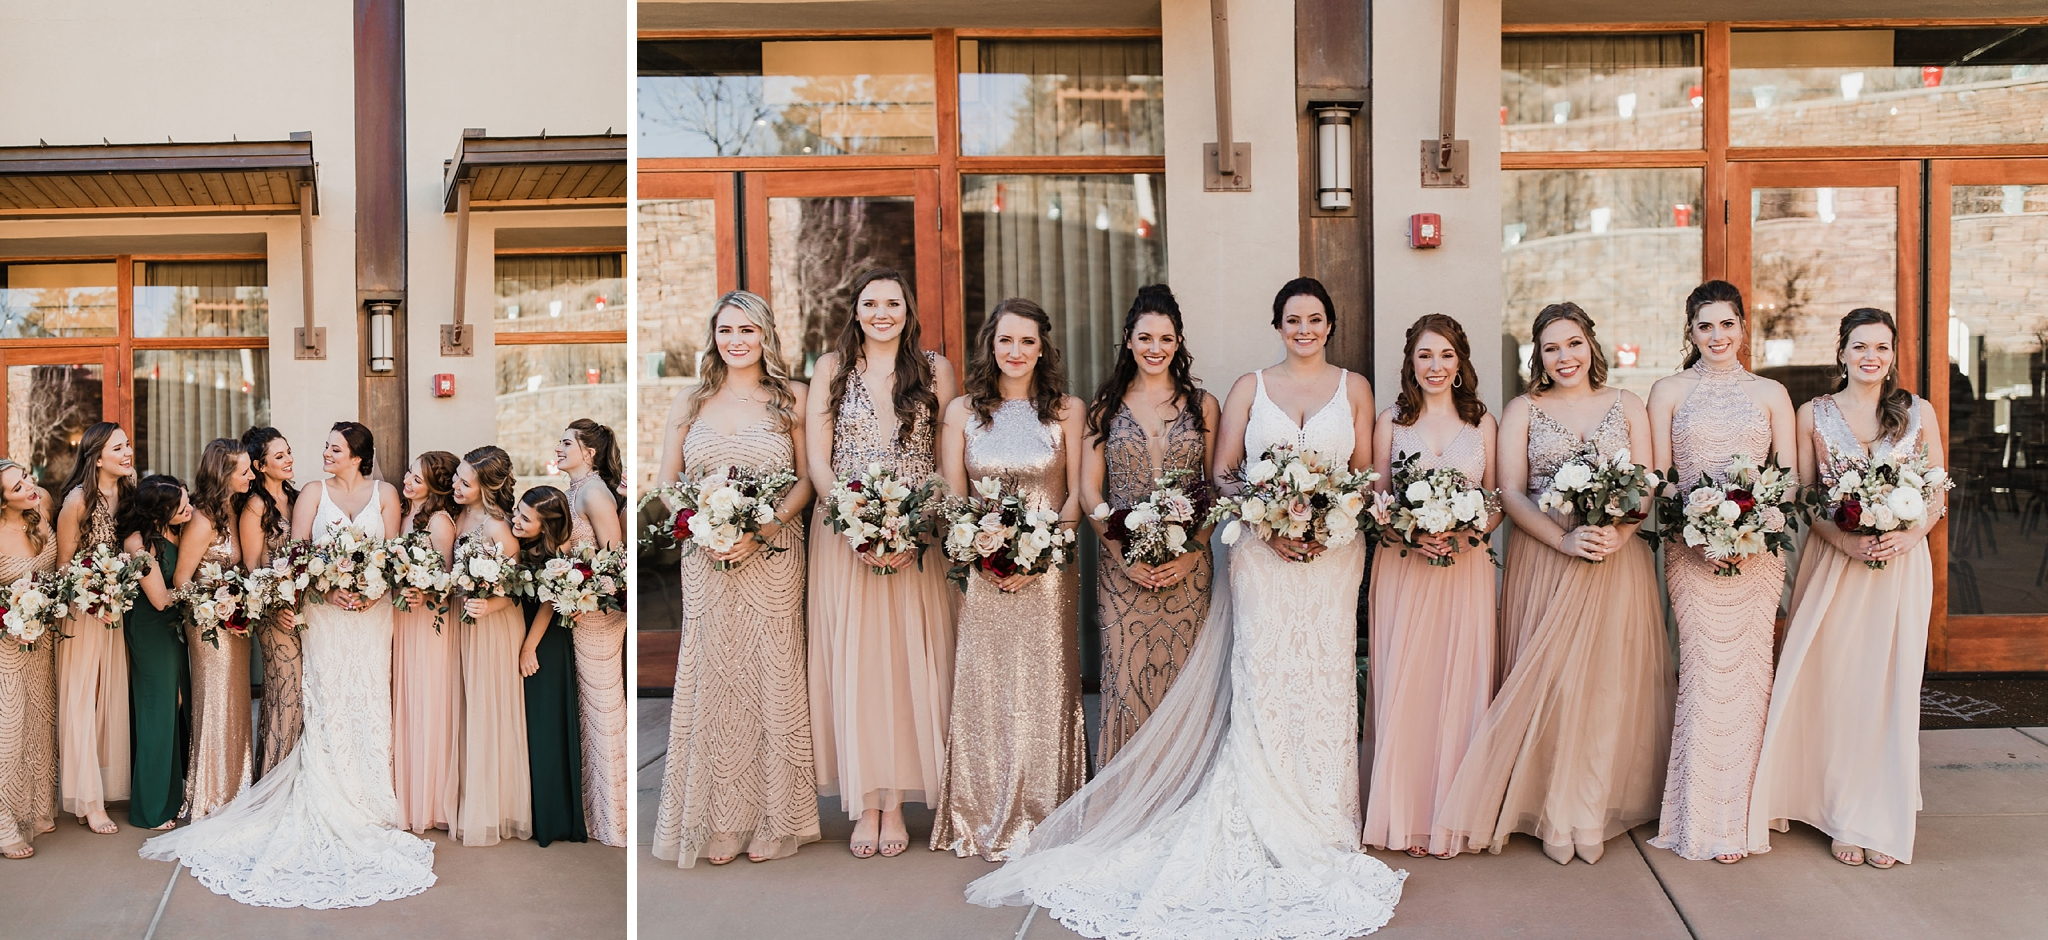 Alicia+lucia+photography+-+albuquerque+wedding+photographer+-+santa+fe+wedding+photography+-+new+mexico+wedding+photographer+-+new+mexico+wedding+-+new+mexico+wedding+-+colorado+wedding+-+bridesmaids+-+bridesmaid+style_0014.jpg